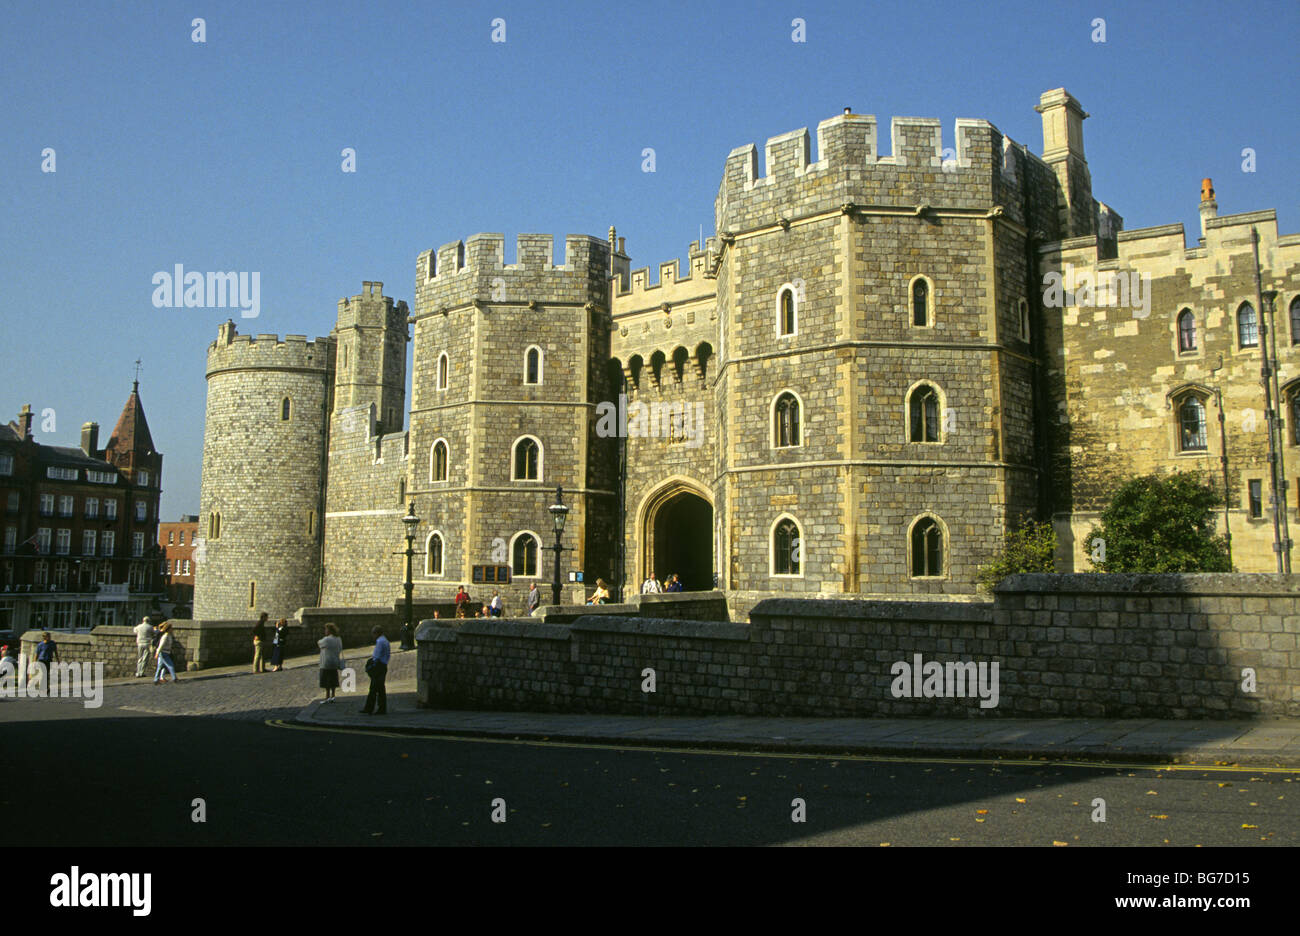 The Front Gate And Walls Of Windsor Castle Home To The